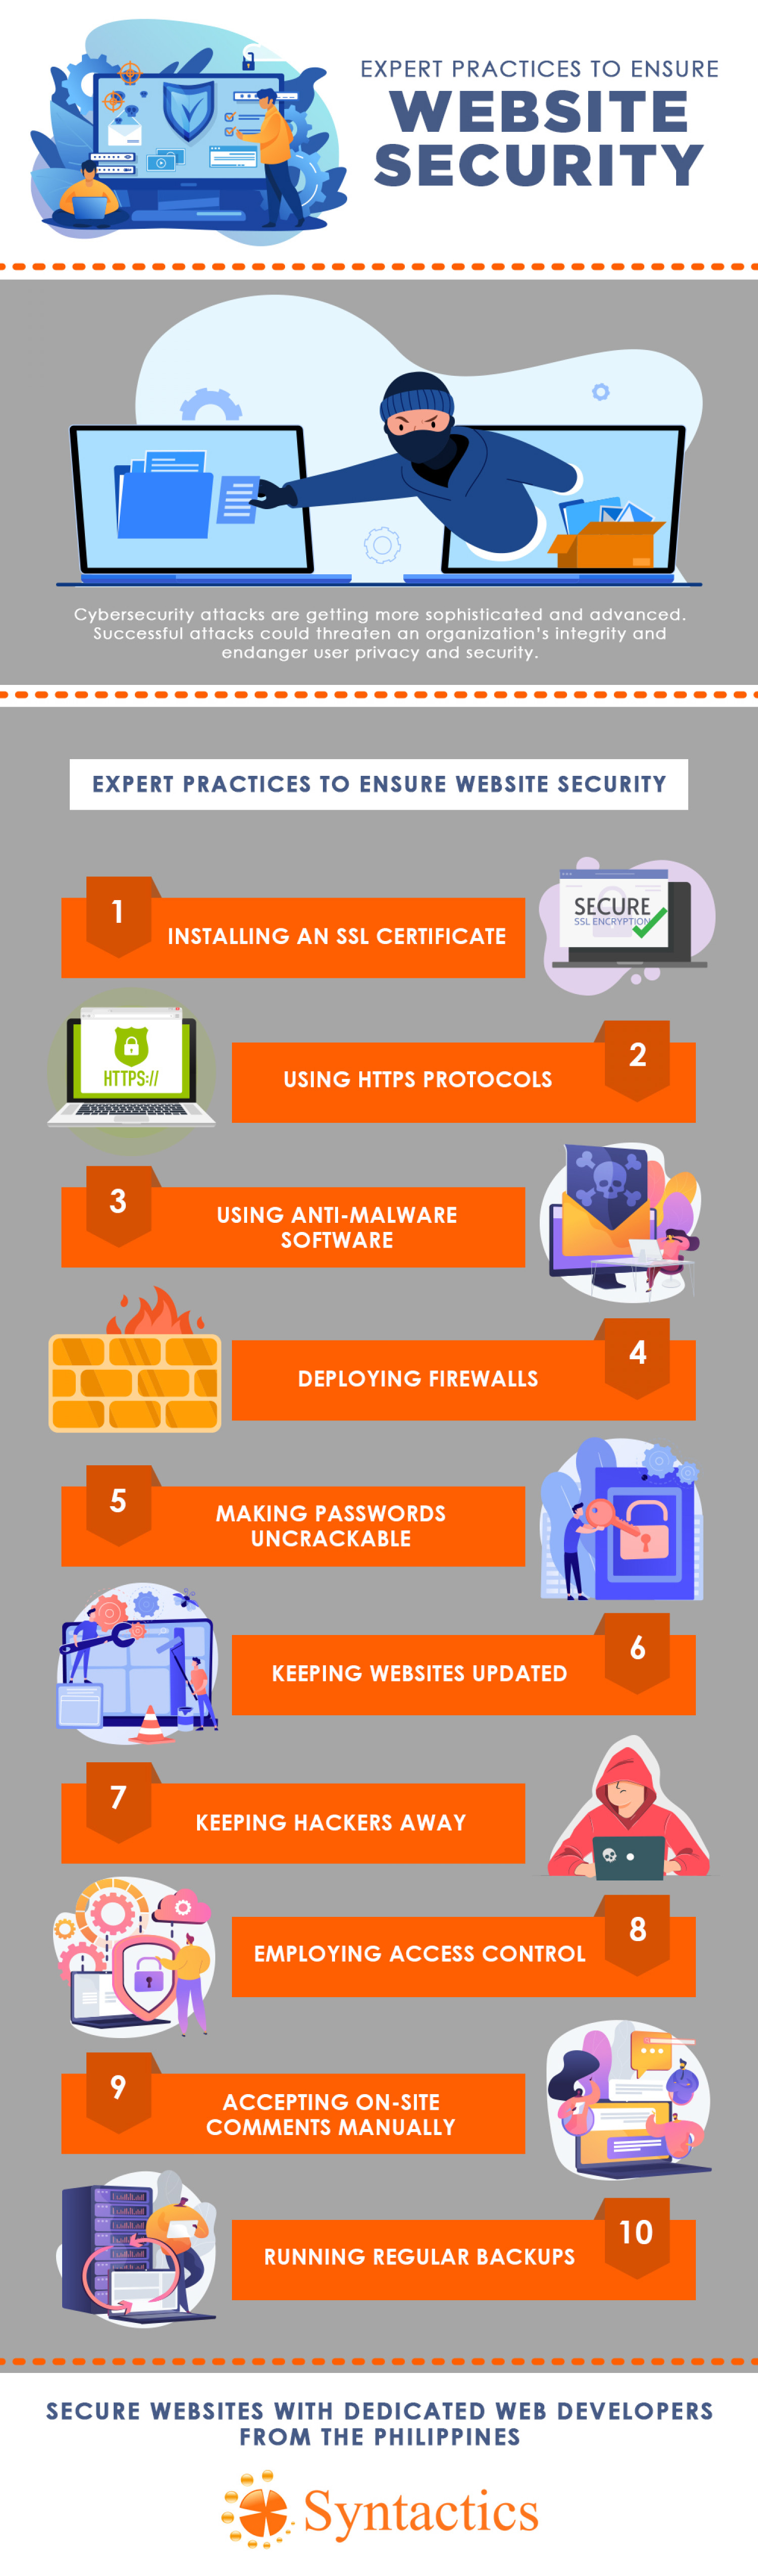 Expert Practices to Ensure Website Security Infographic